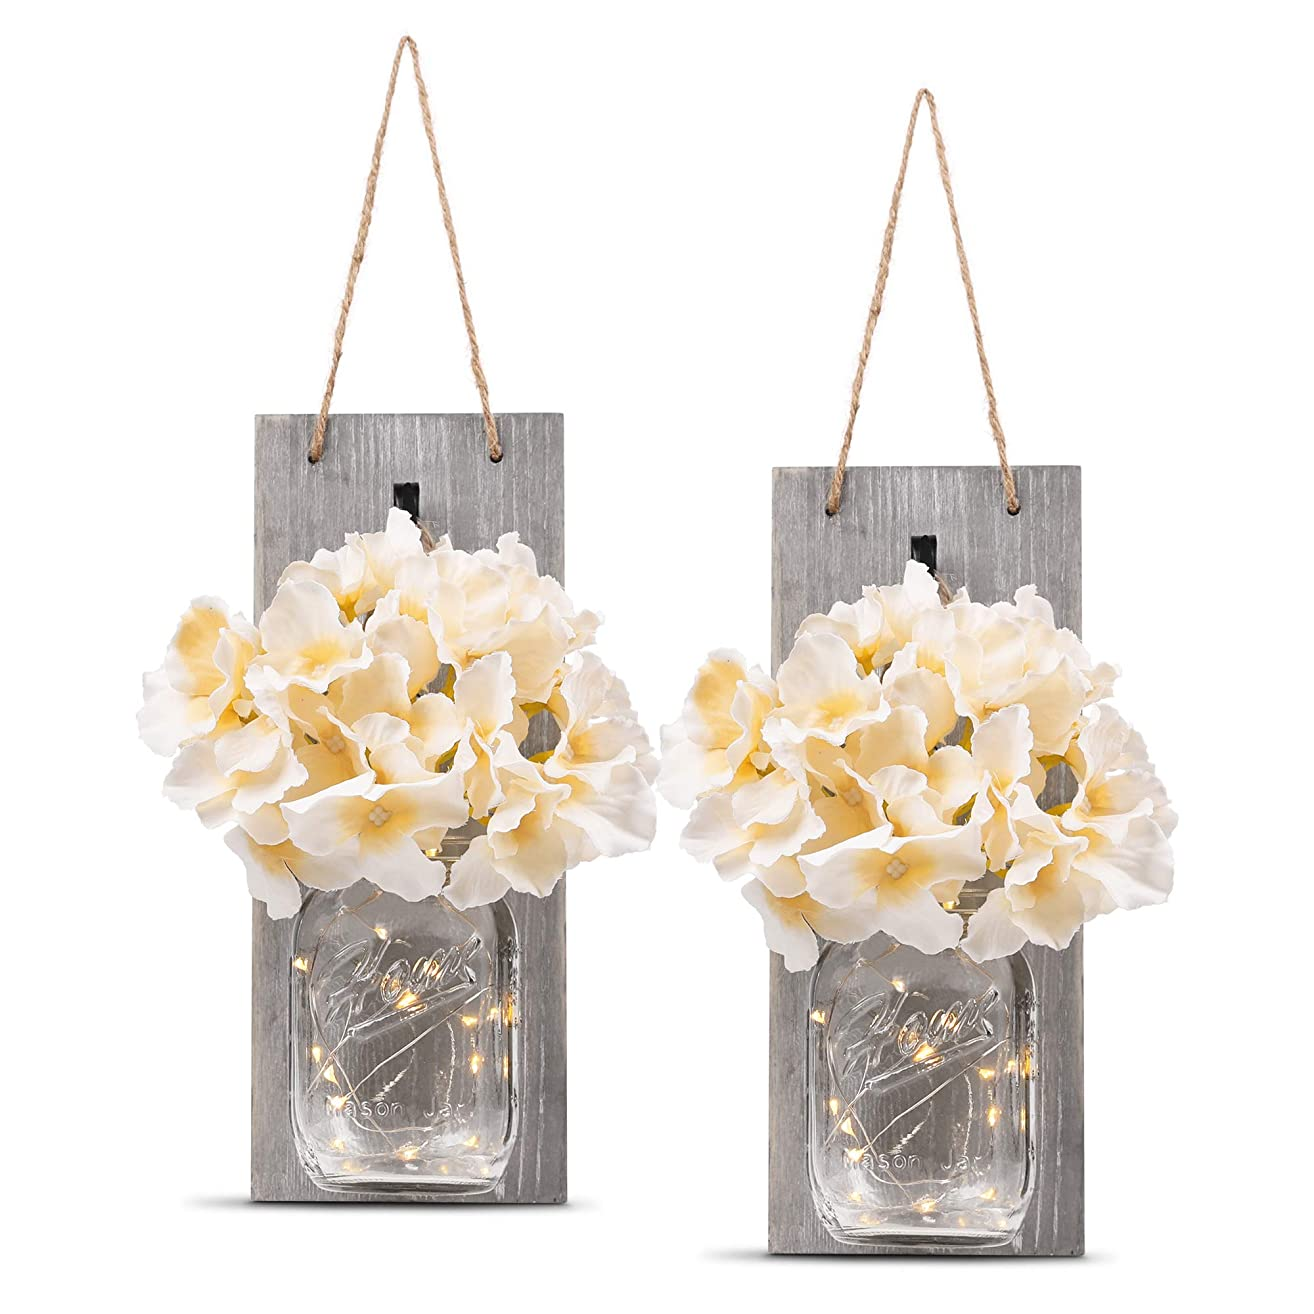 HOMKO Decorative Mason Jar Wall Decor - Rustic Wall Sconces with 6-Hour Timer LED Fairy Lights and Flowers - Farmhouse Home Decor (Set of 2)